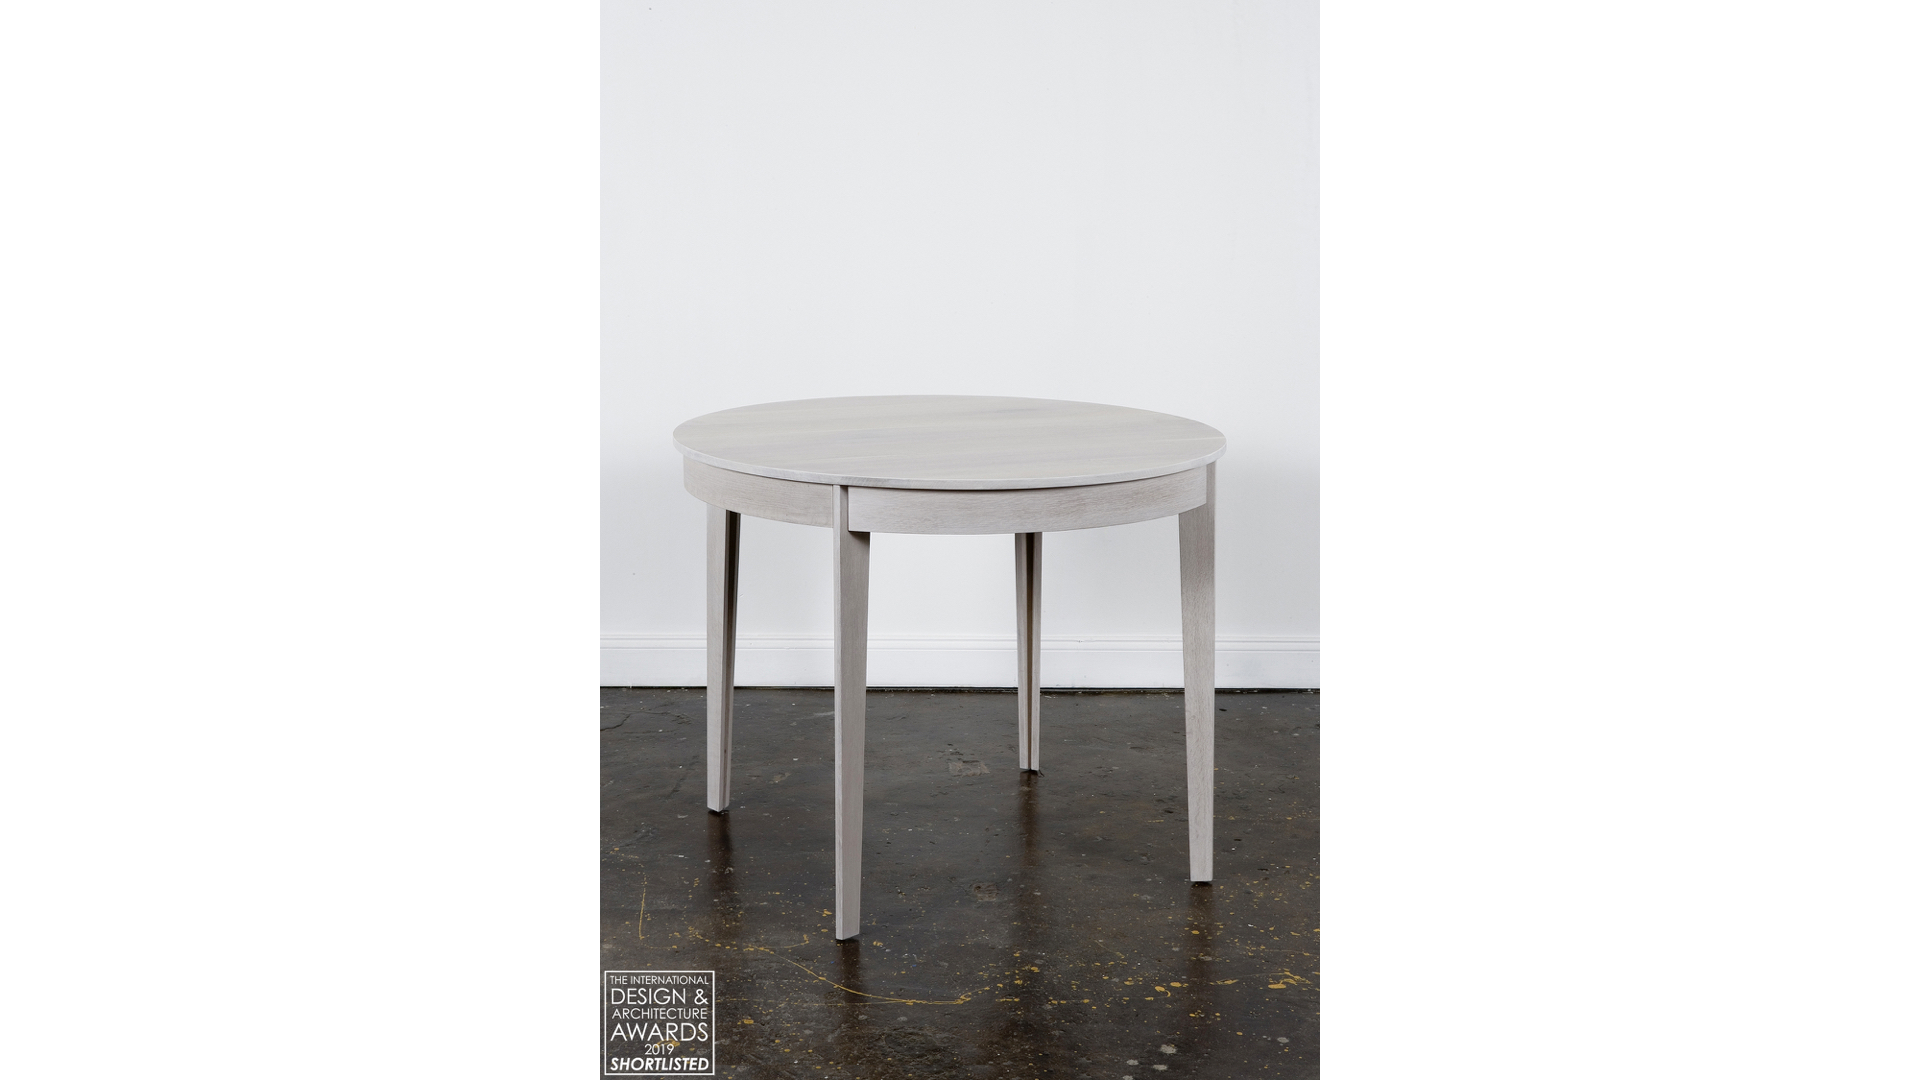 Melissa Table i | © Bernardo Guillermo Studio